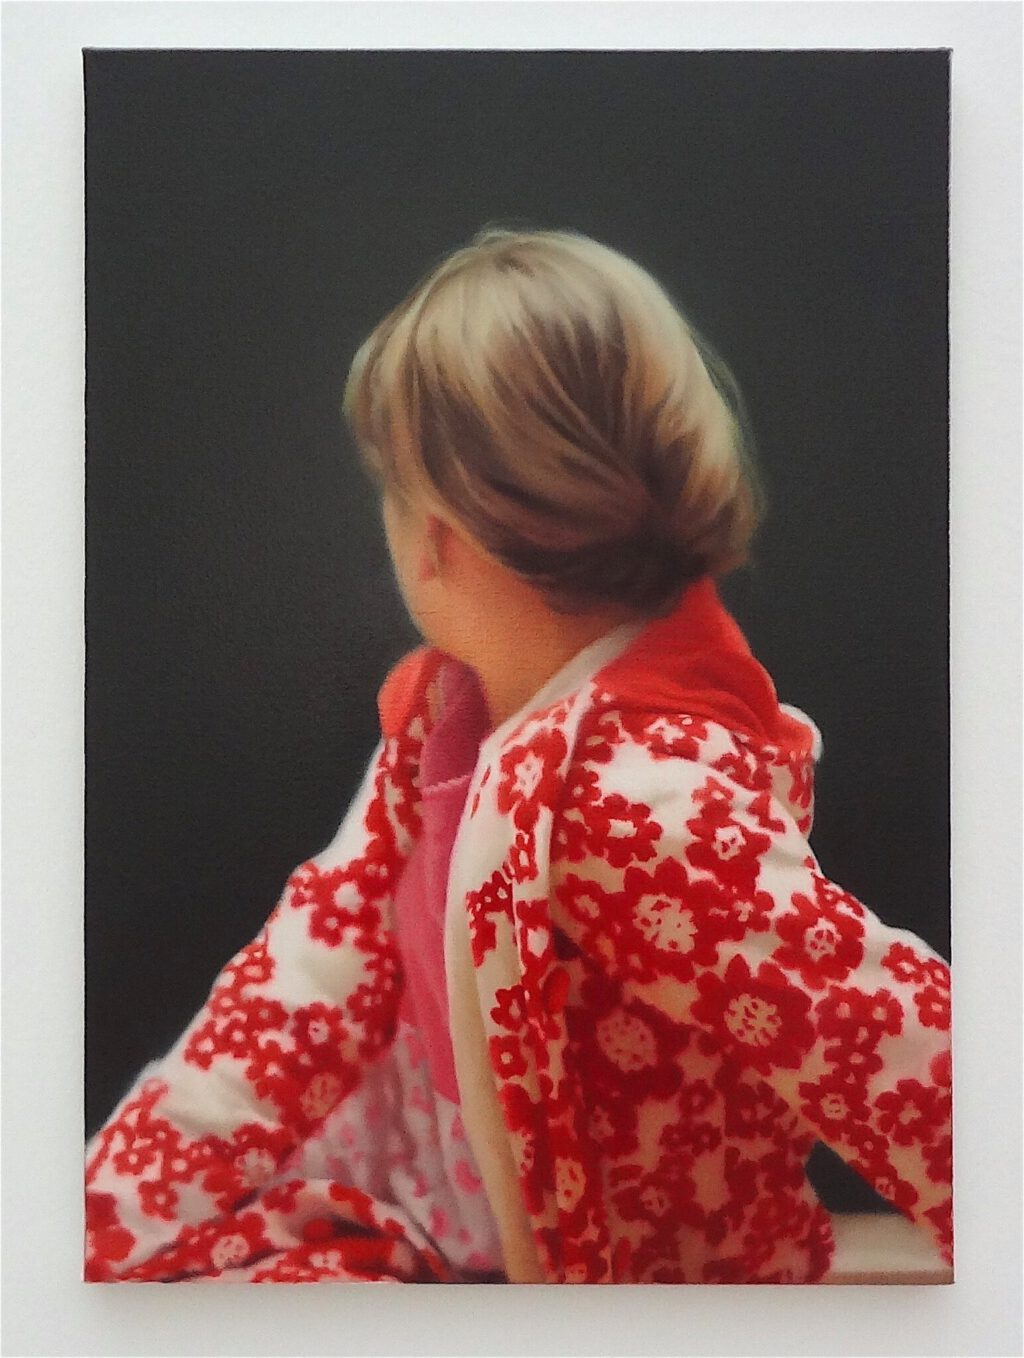 Gerhard Richter ゲルハルト・リヒター Betty 1988, Öl auf Leinwand. Saint Louis Art Museum